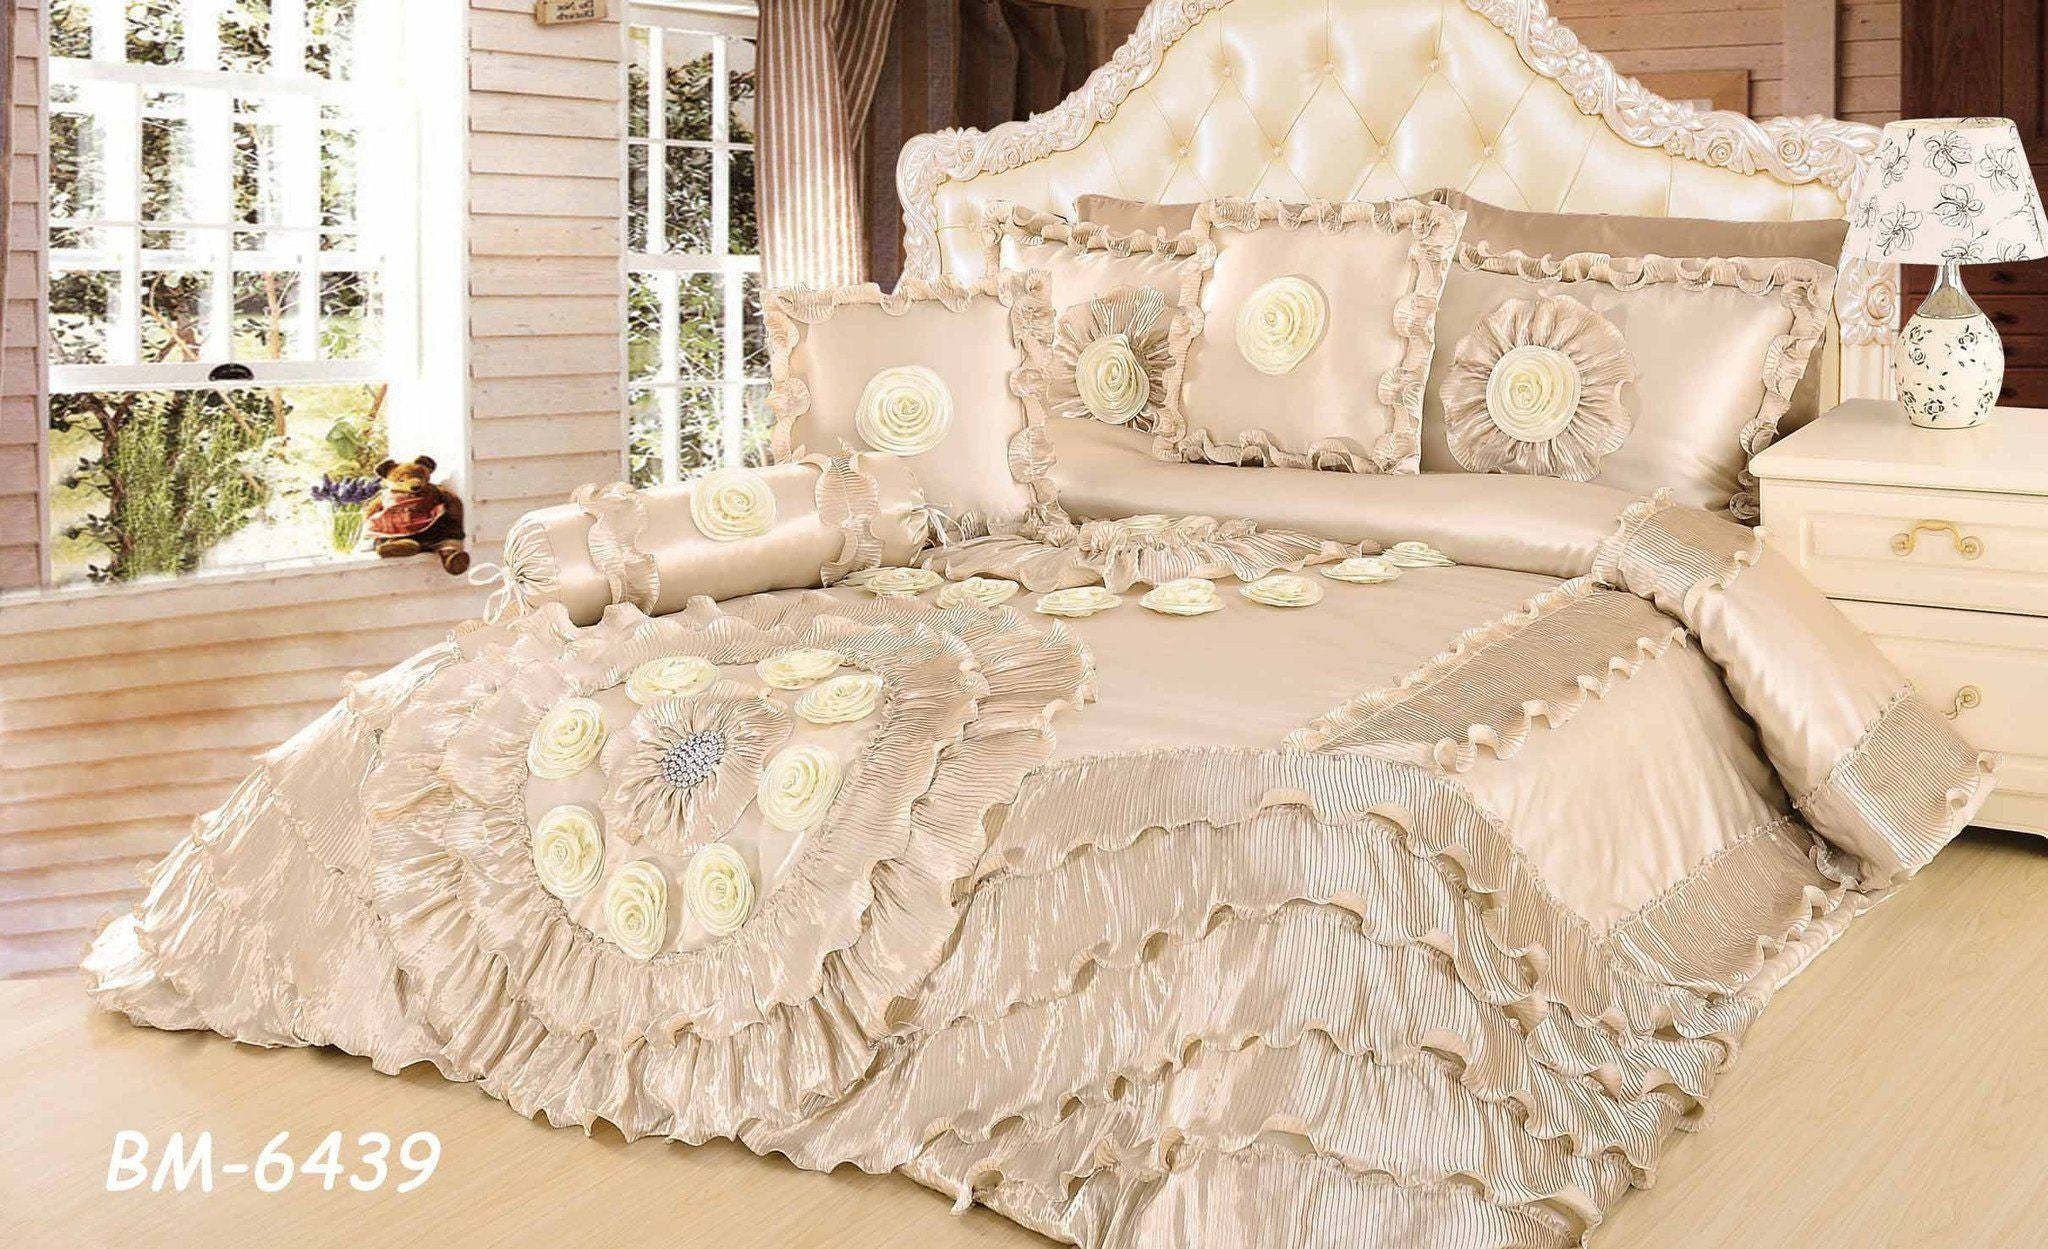 set cream one kind co sateen bedding comforter ralph aetherair paisley asli black the sheet sets dalya has of other is best piece